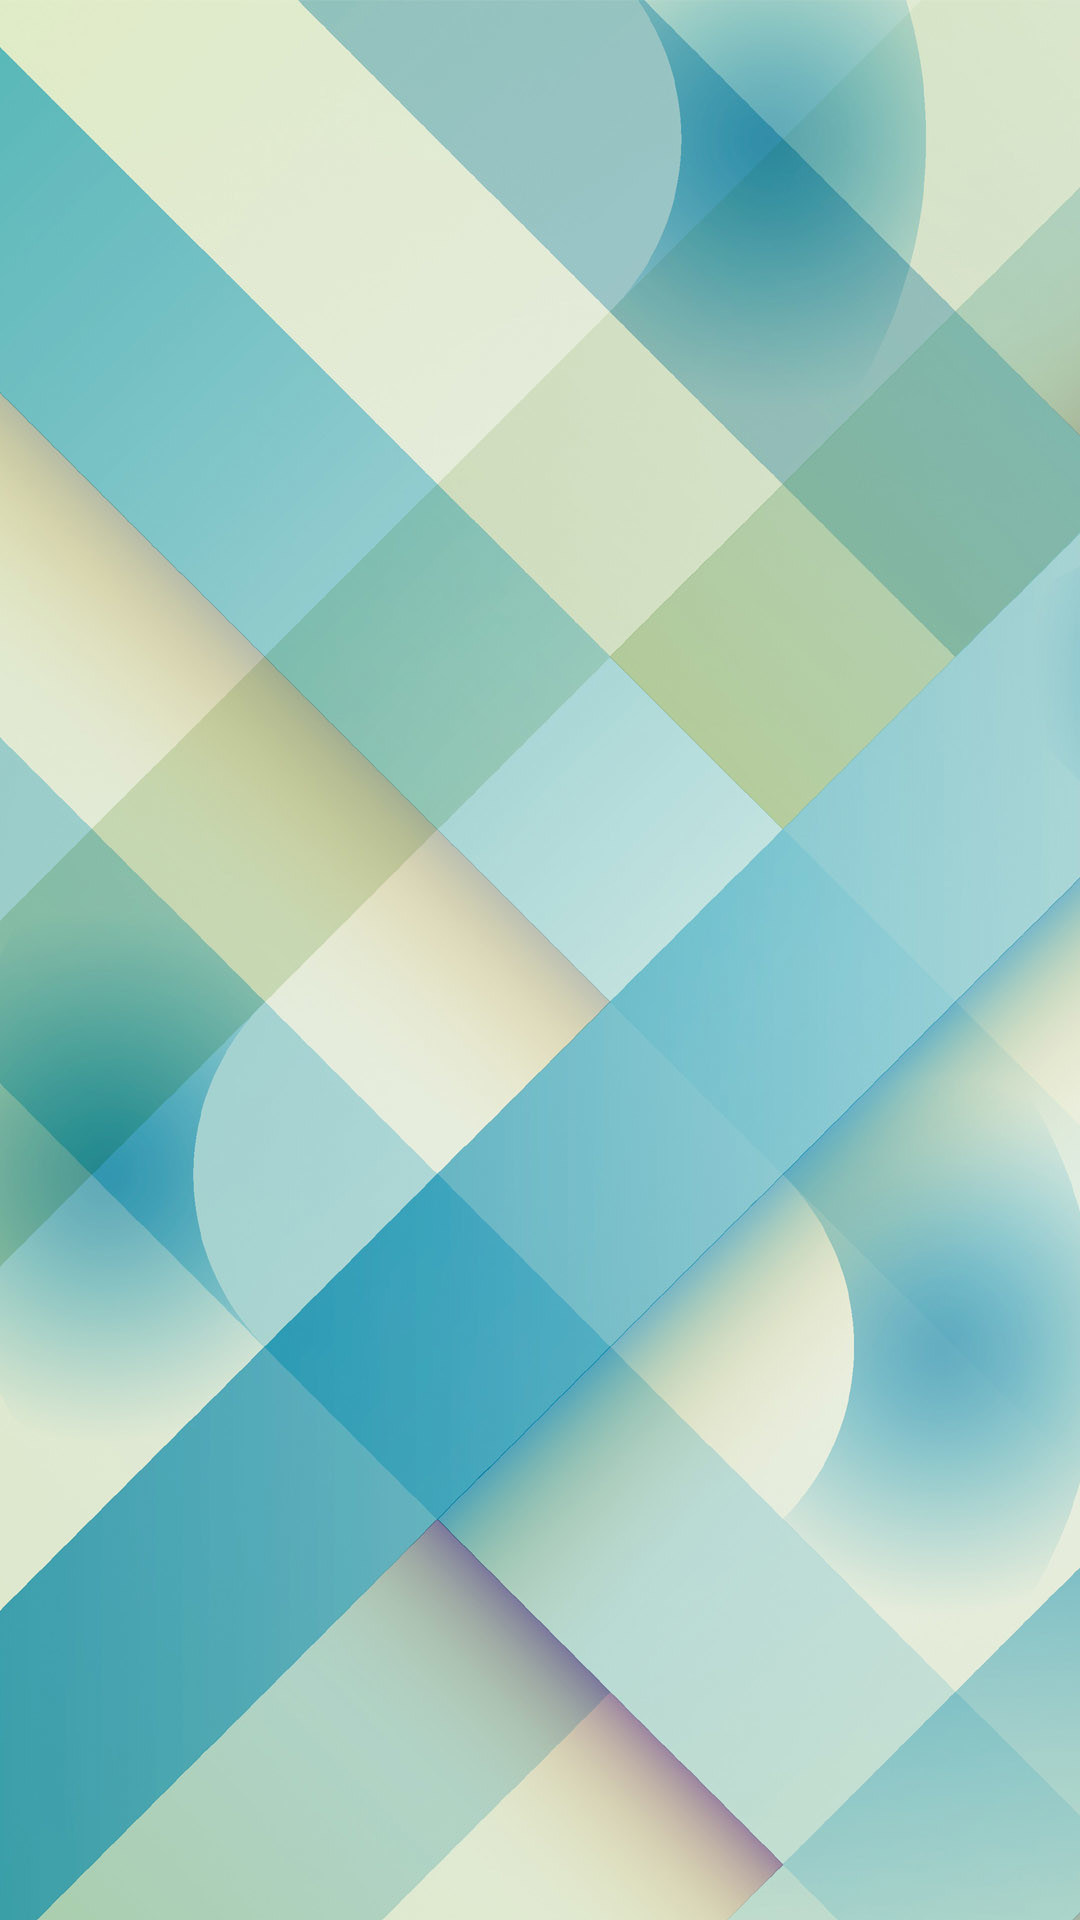 Nexus 5 Android 4.4 KitKat Default Light Blue Shapes Android Wallpaper .